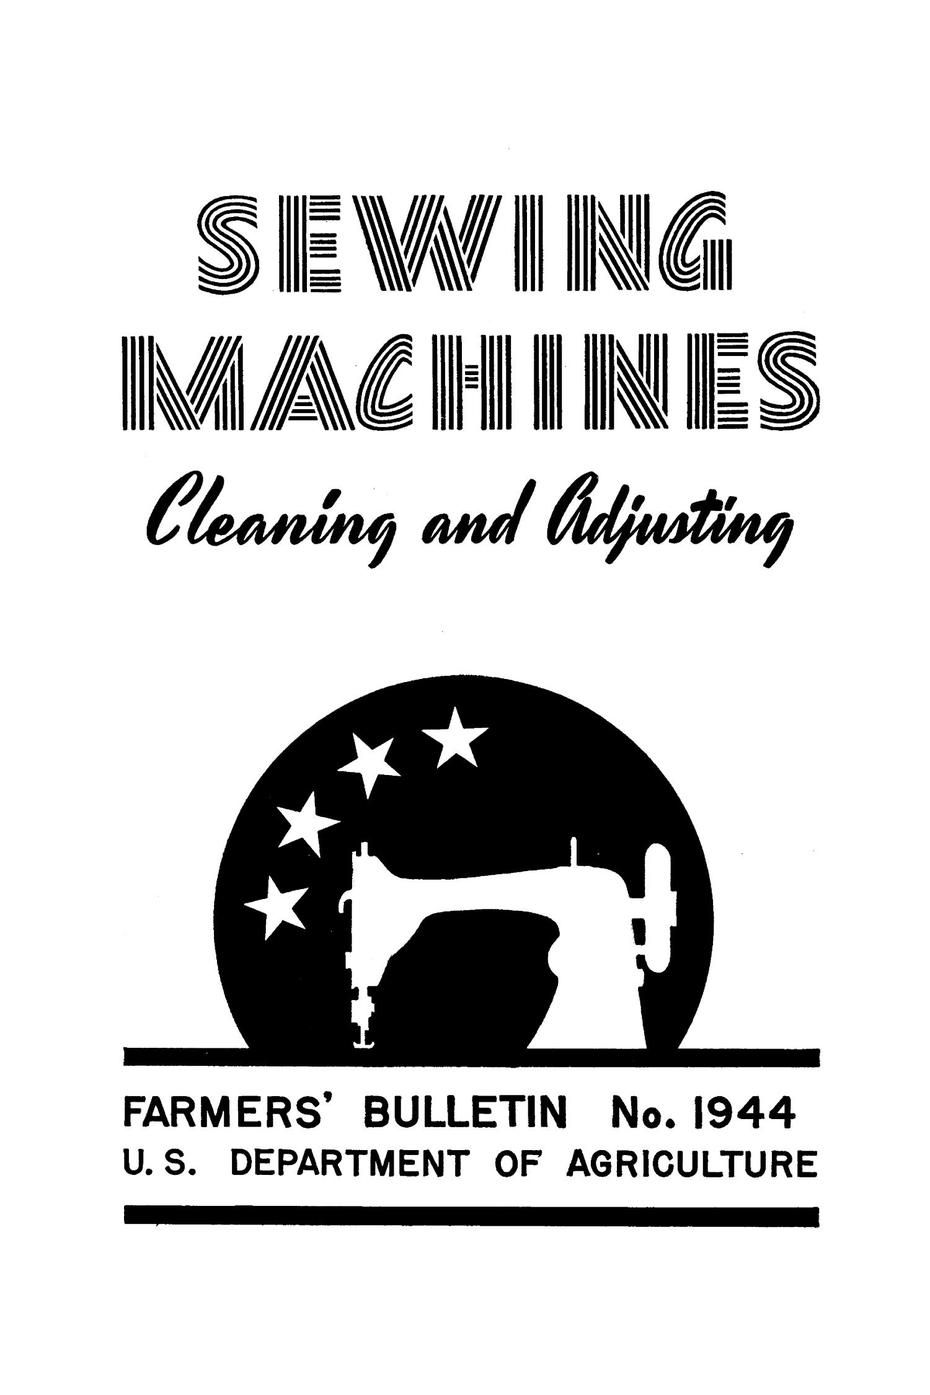 USDA FARMERS' BULLETIN NO.1944 (1943): Treadle and other